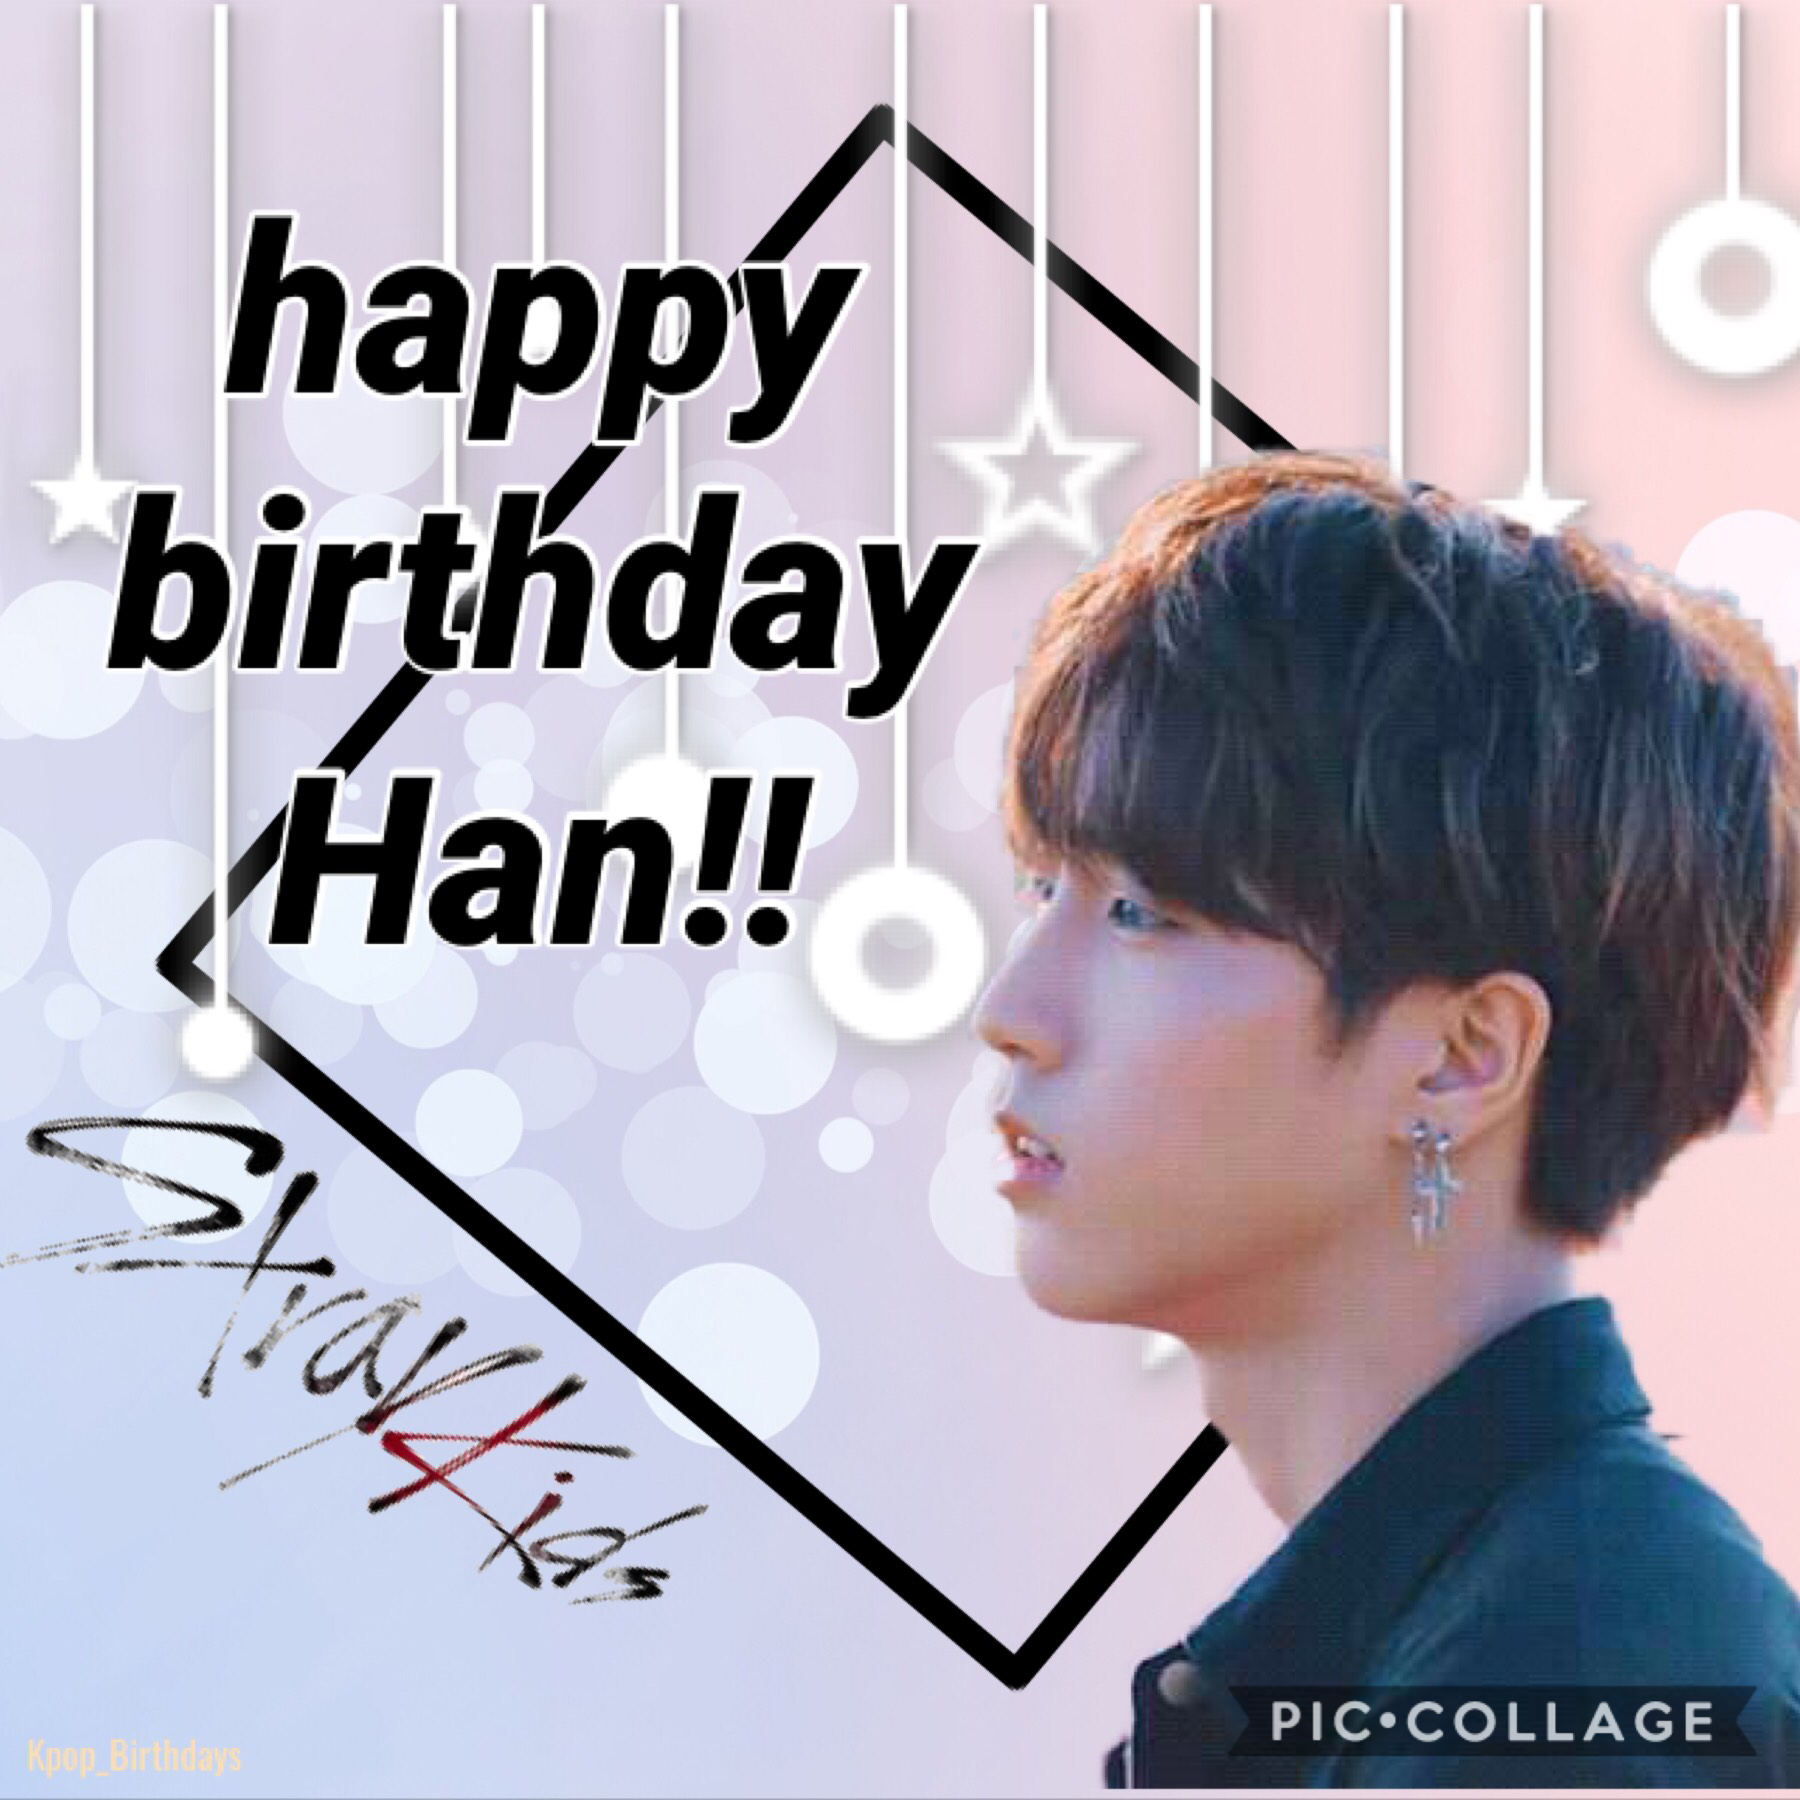 tapppp, HAPPY BDAY TO THE CUTEST LIL SQUIRREL EVER UWU i've been with skz since predebut and they all have grown so much it's crazyyy and now my boi is 18!! ♥️ SUPPORT SKZ bc their lyrics are super meaningful and touching :) 💓💓💓 -koko